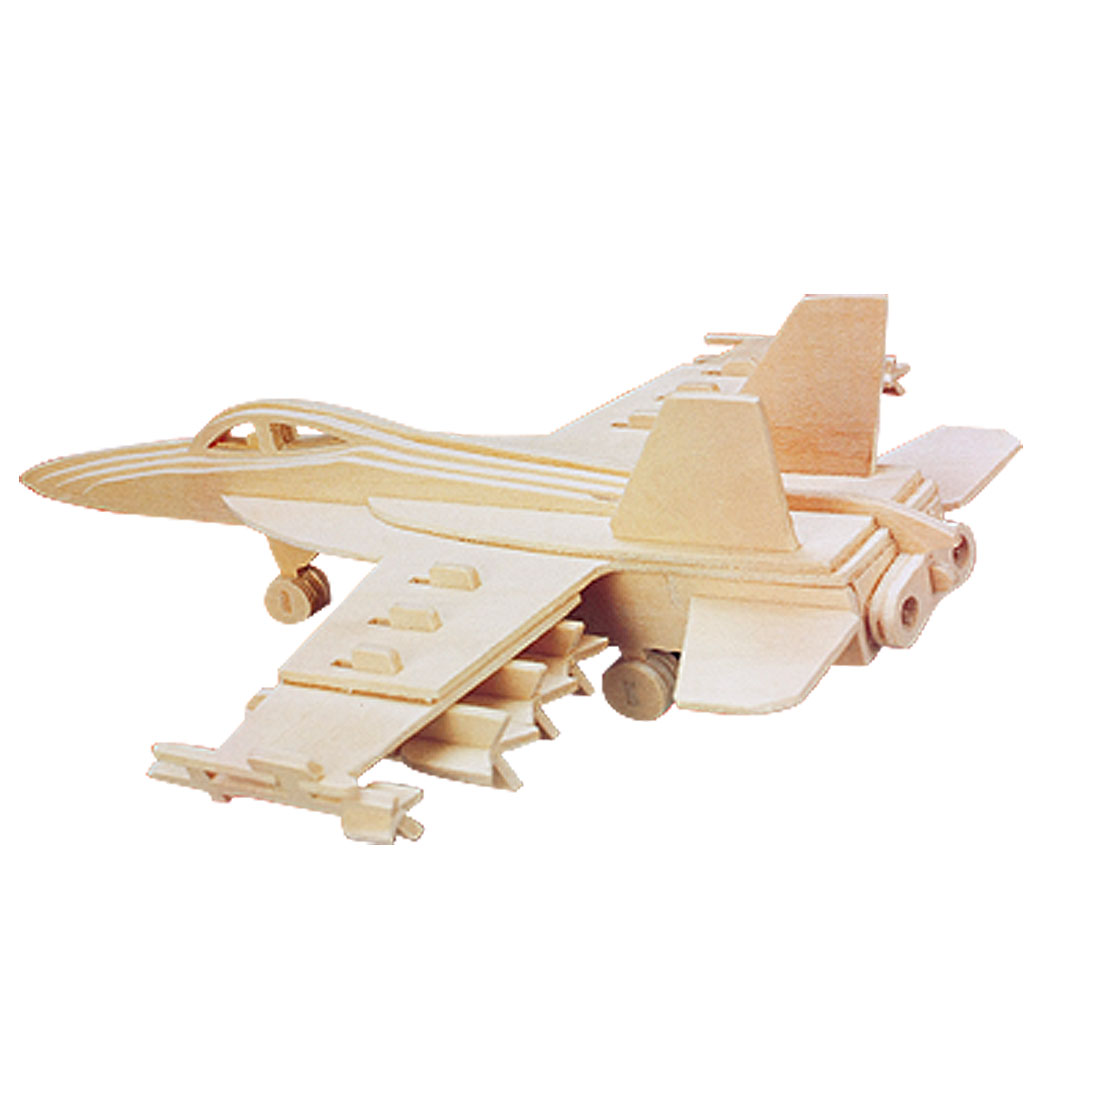 Chidlren F18 Hornet Bomber Woodcraft Construction Kit Gift